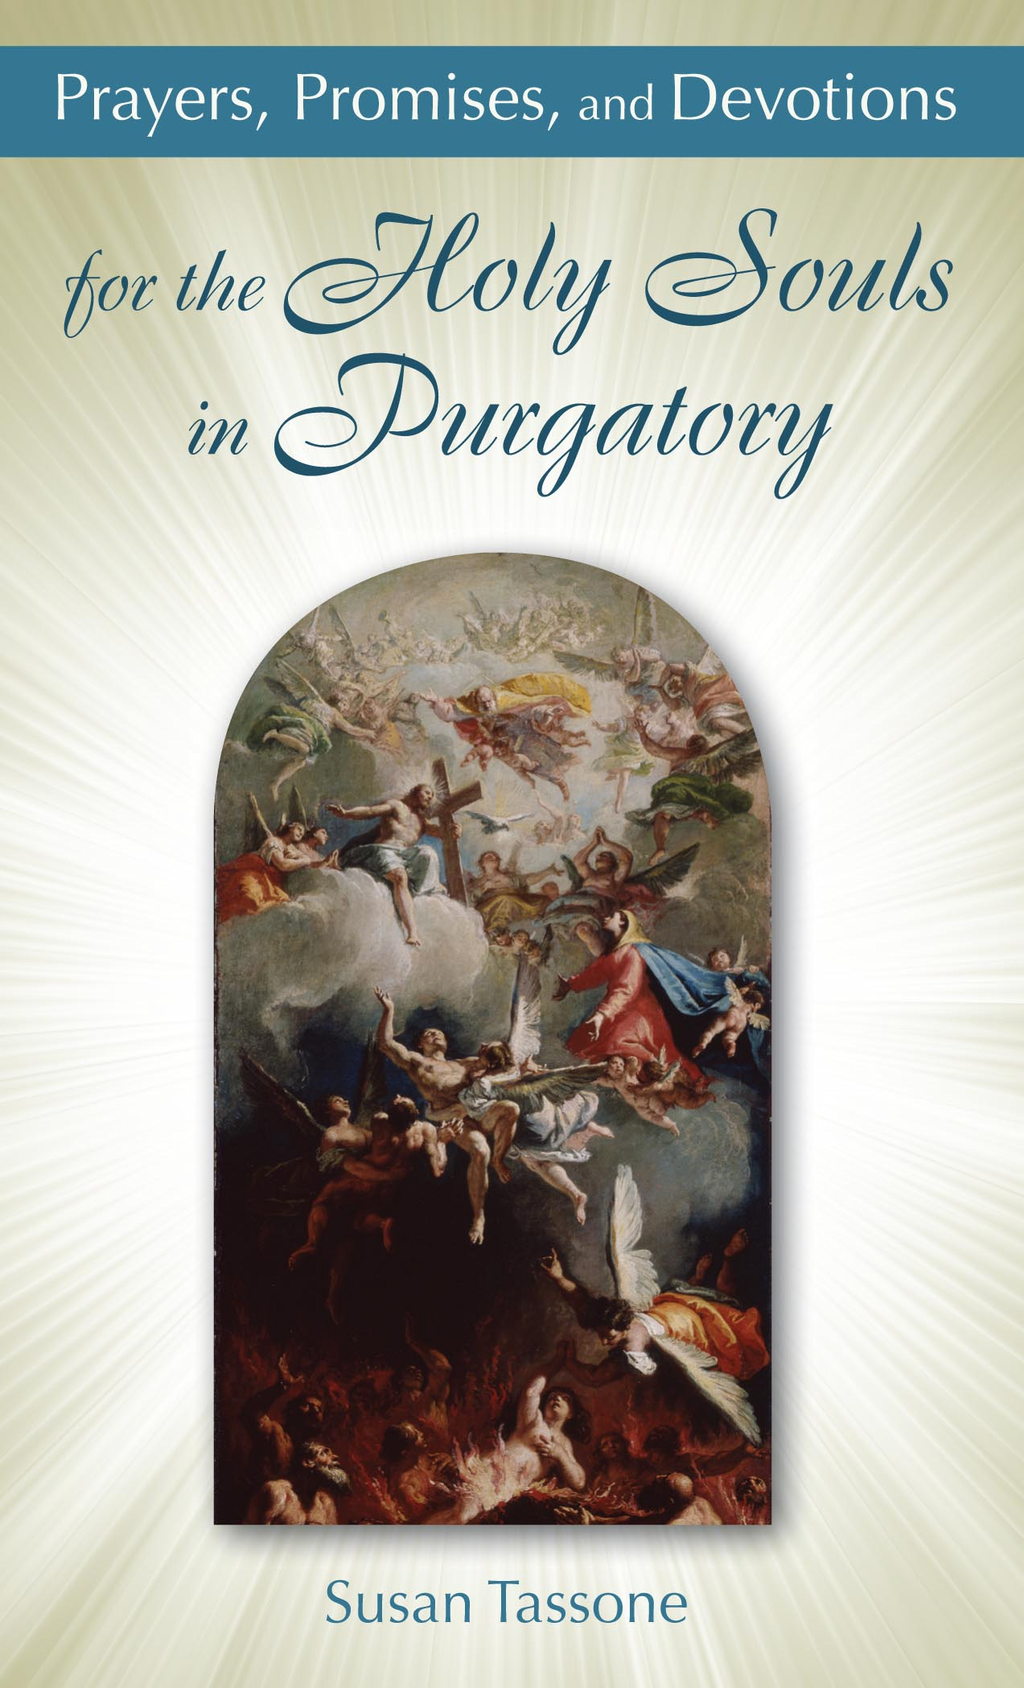 Prayers, Promises, and Devotions for the Holy Souls in Purgatory